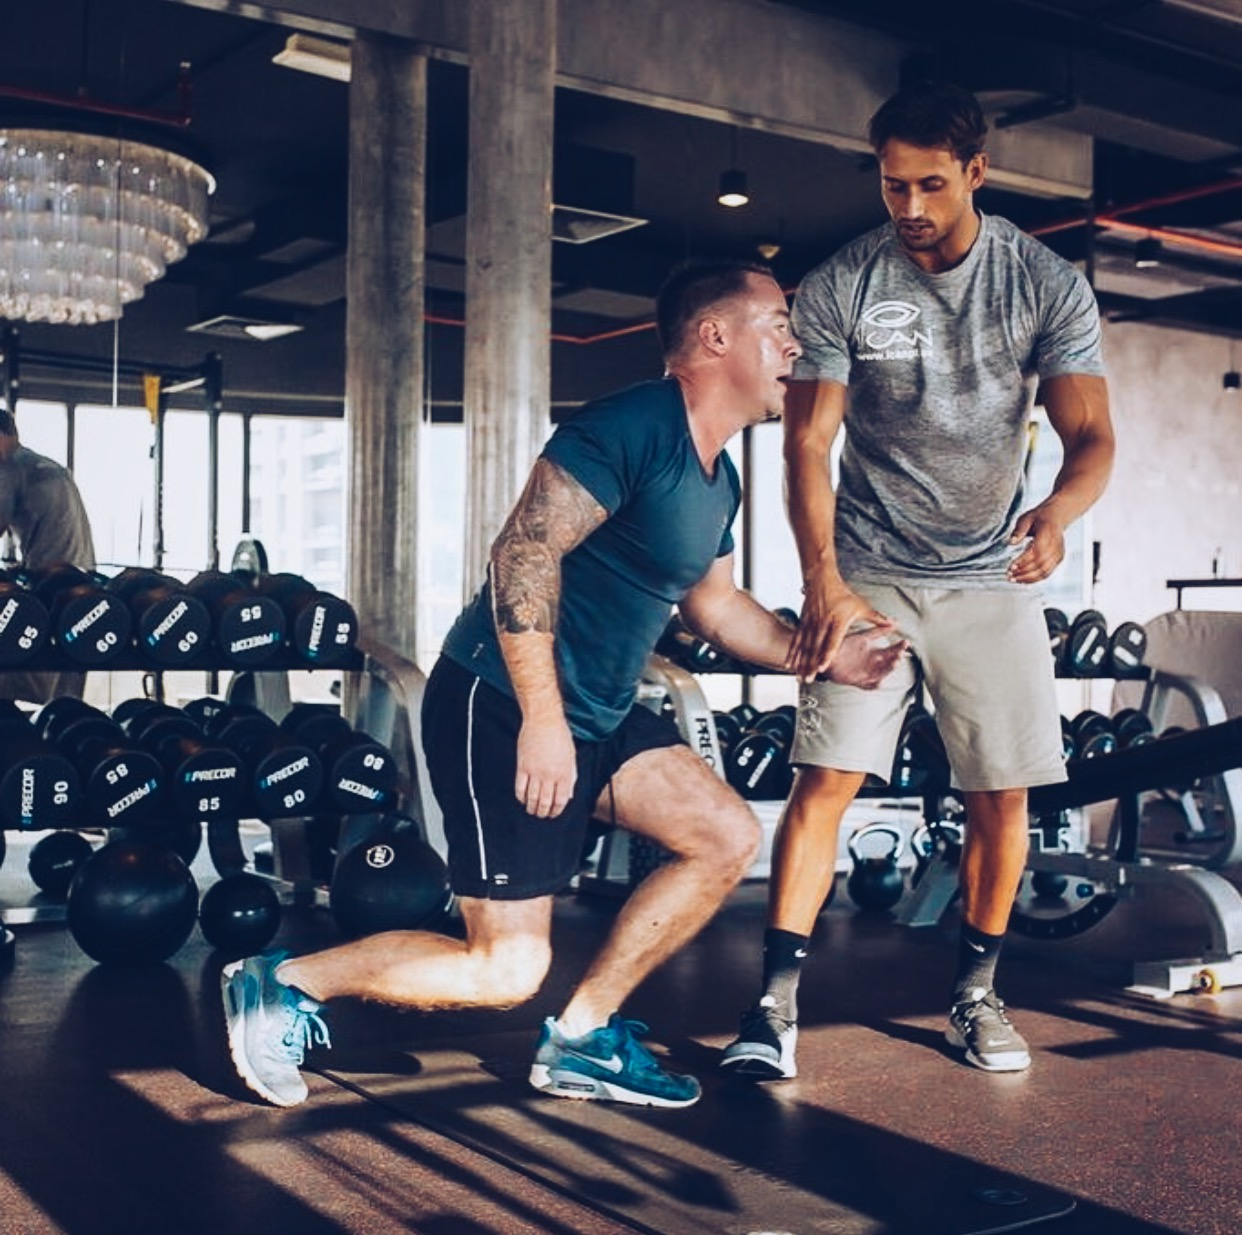 50 BLOCK - 50 X PT£2,500 PAID IN ADVANCE£50 PER SESSIONYour training programme includes;- 50 x 1 HOUR PRIVATE PT SESSIONS.- MINDSET COACHING- KINETIC MOVEMENT ASSESSMENT- FULL NUTRITIONAL PLANNING AND GUIDANCE- ONGOING SUPPORT FROM THE WORLDS LEADING FITNESS COACHES